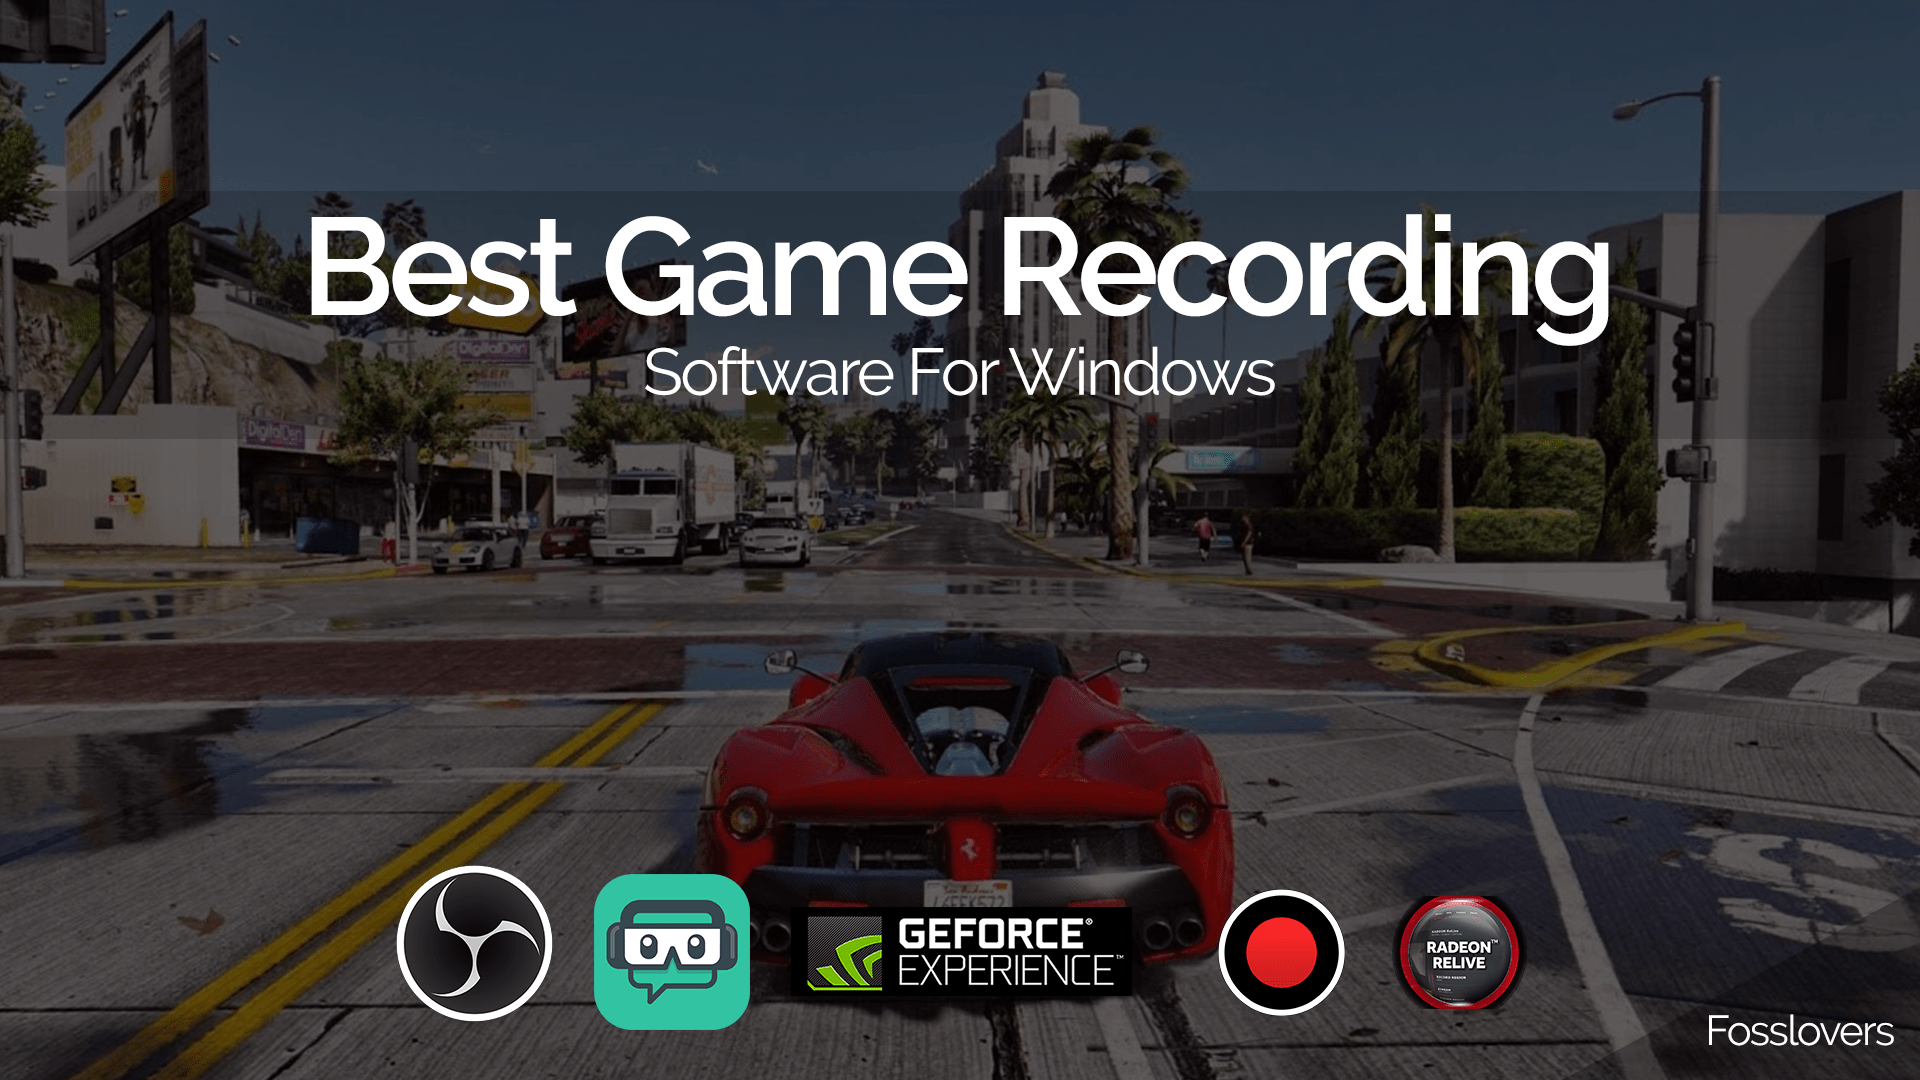 5-Best-Game-Recording-Software-For-Windows-2018